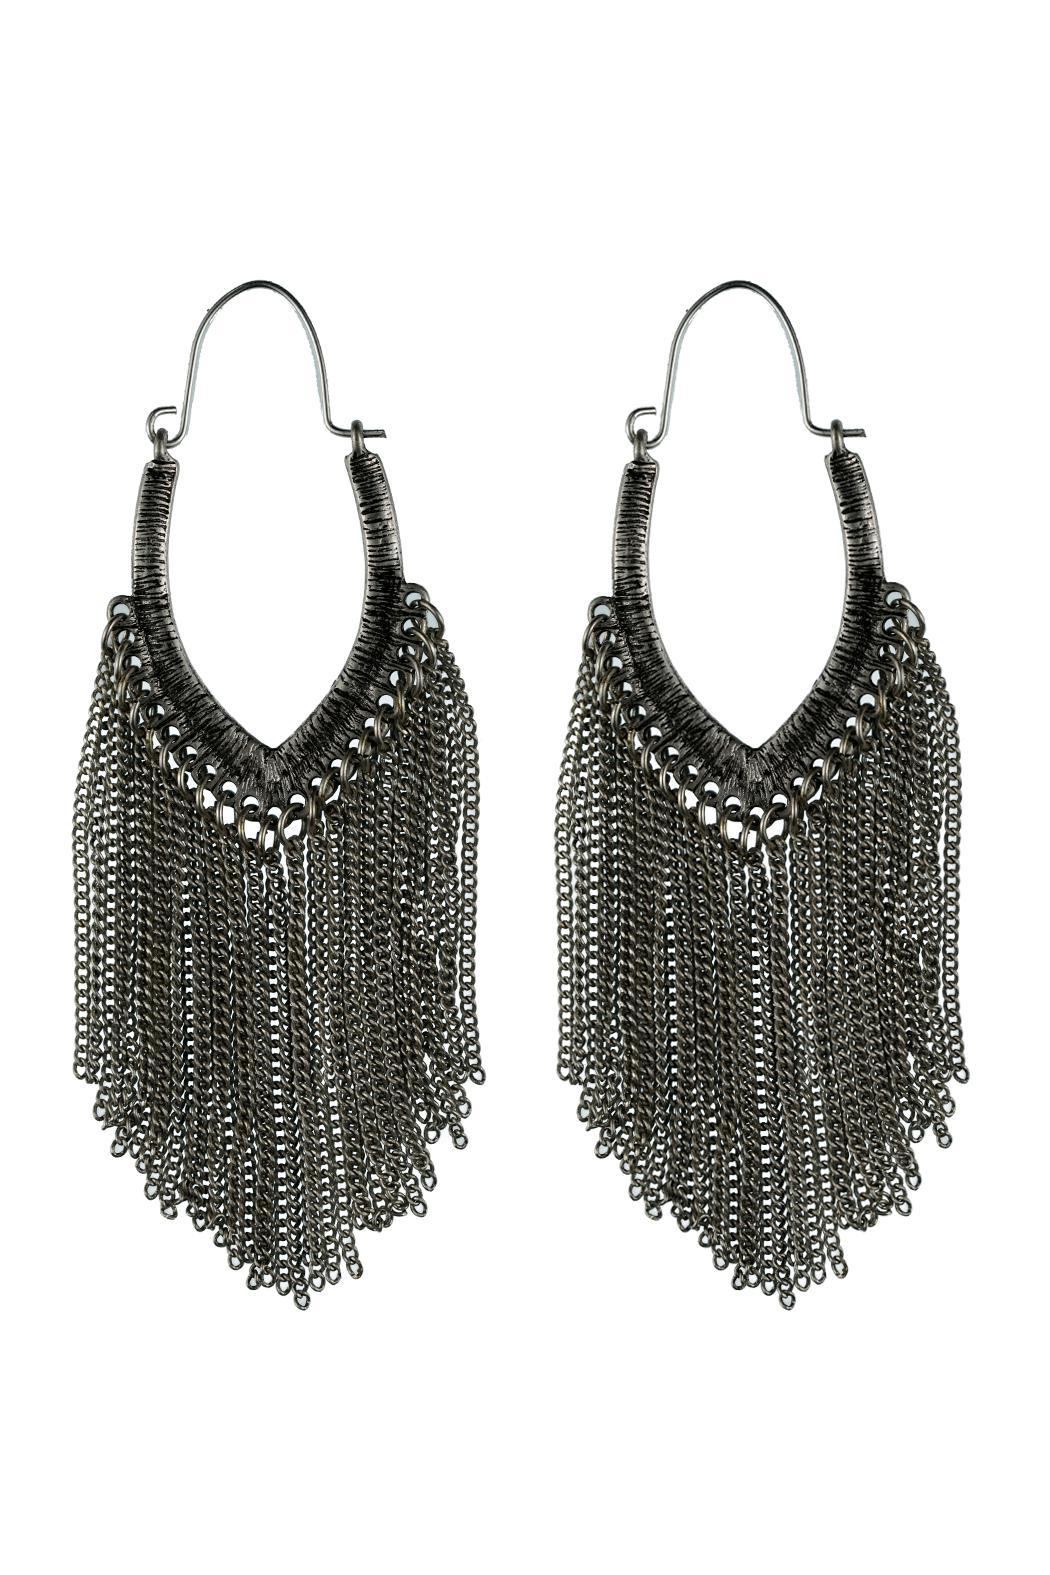 Fame Accessories Chain Hoop Earrings - Large